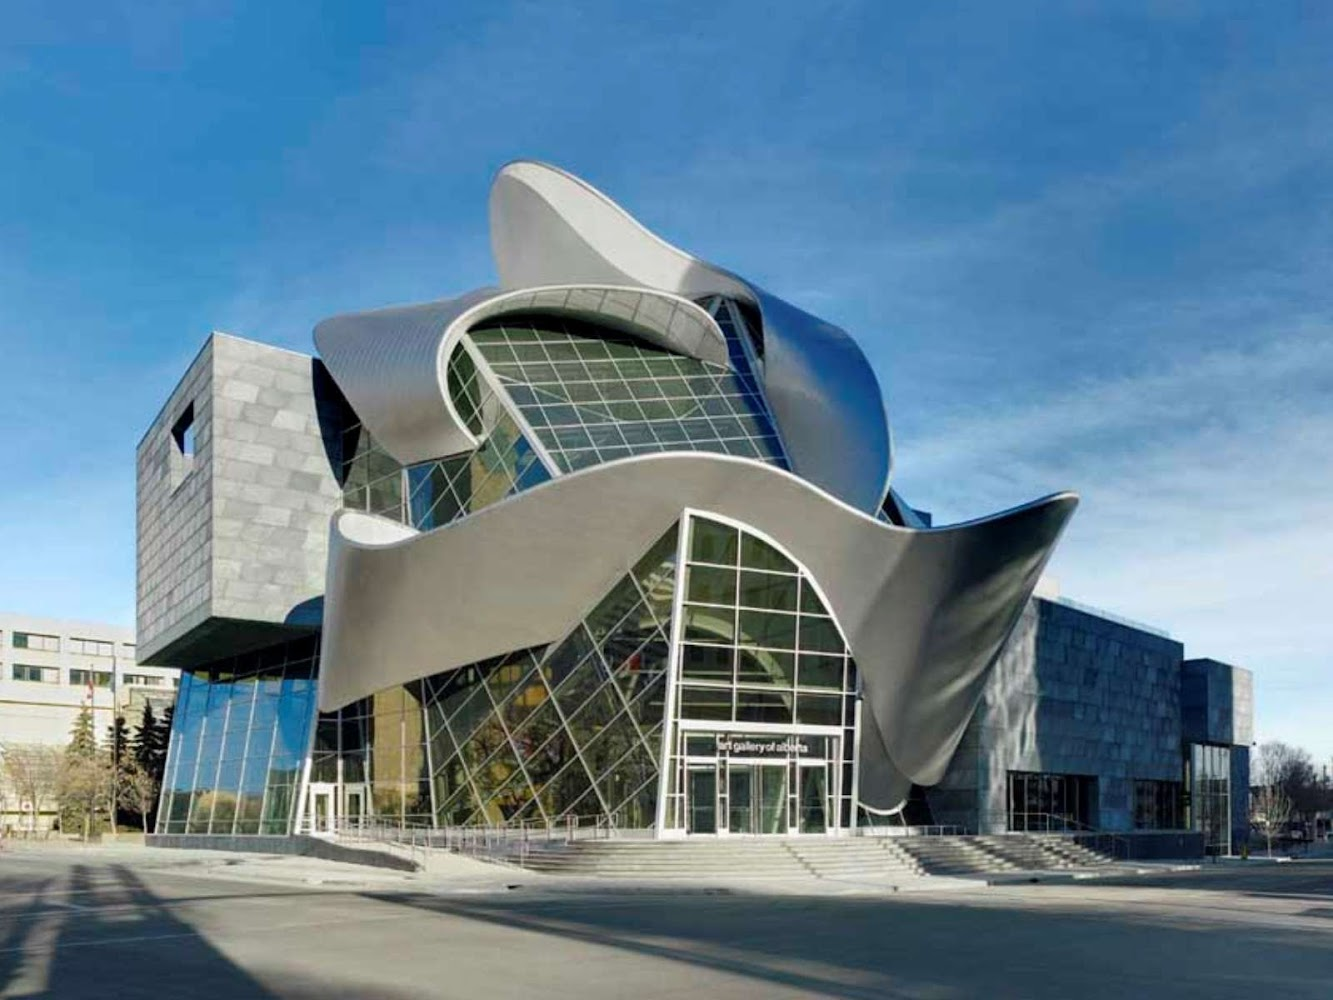 Edmonton, Alberta, Canada: Art Gallery of Alberta by Randall Stout Architects